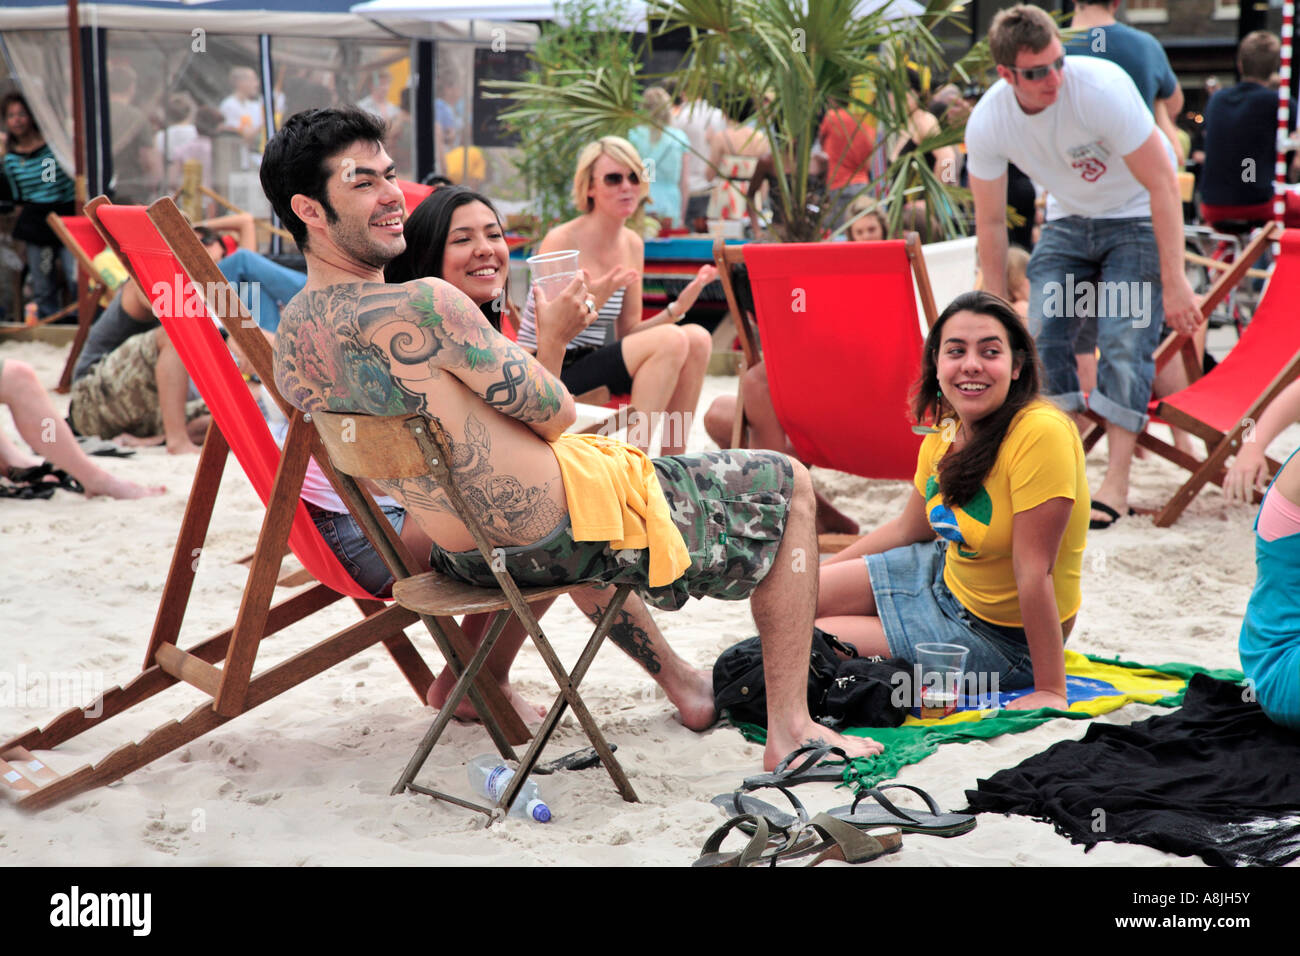 a group of friends relax on a city beach in brick lane, east london - Stock Image